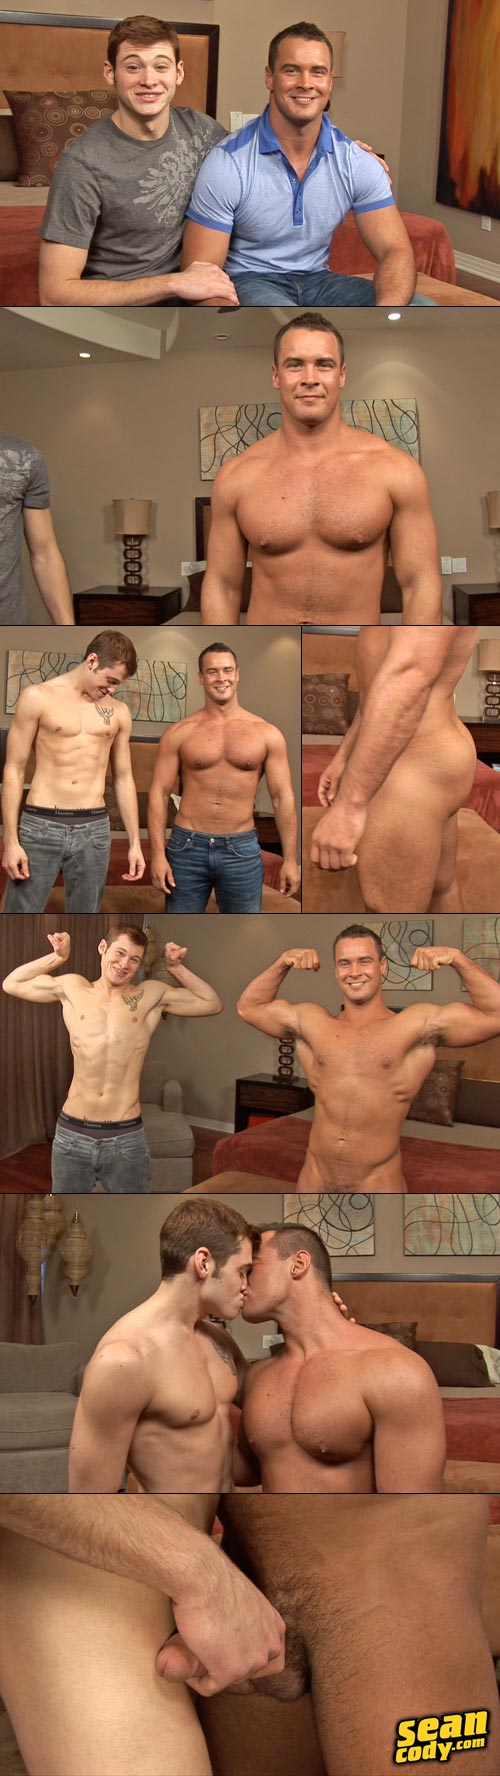 Oscar & Kurt at SeanCody